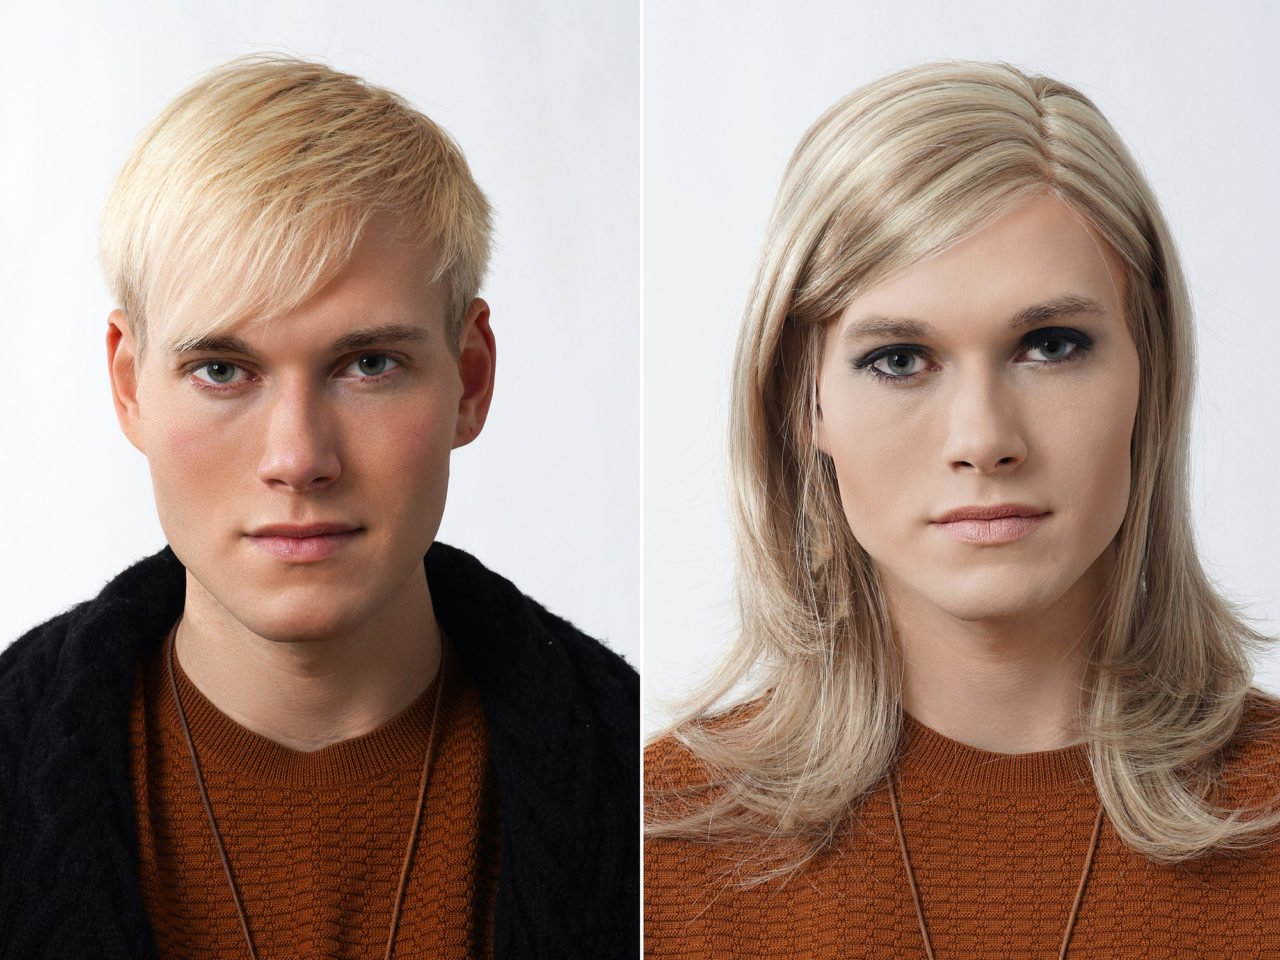 Man - Woman, Before - After